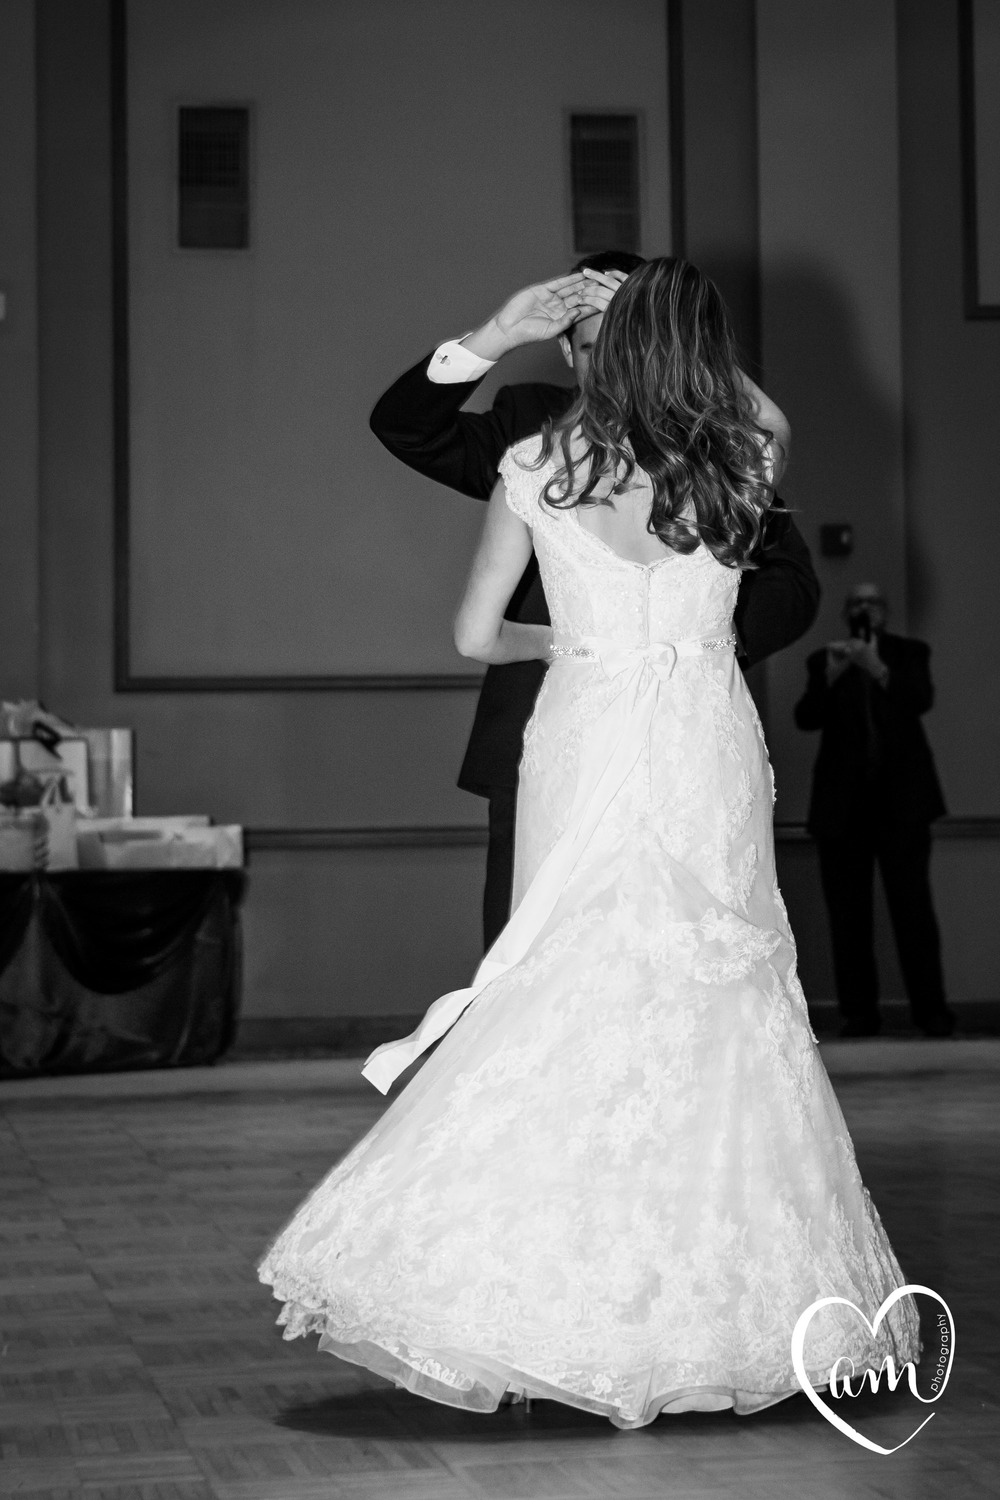 First Dance Photo by Amanda Mejias Photography: Destination Wedding Photographer.